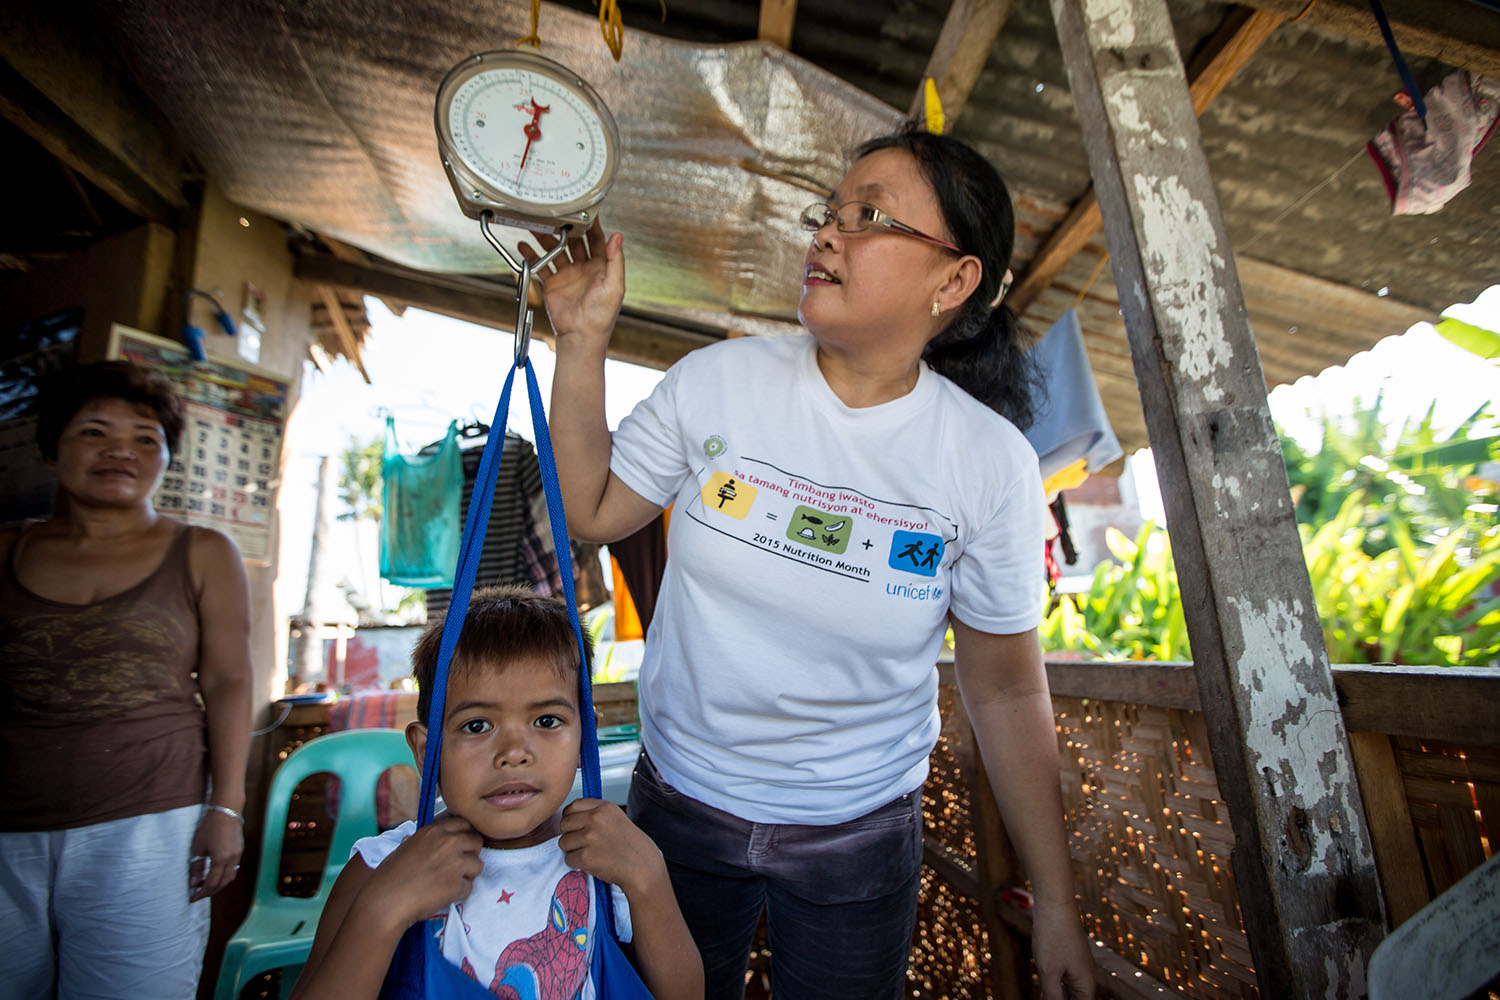 Renjie Engracial(nutrition campaign) in the community UNICEF trip to Tacloban, in the Philipines to report on their response to Typhoon Yolanda, March 2016